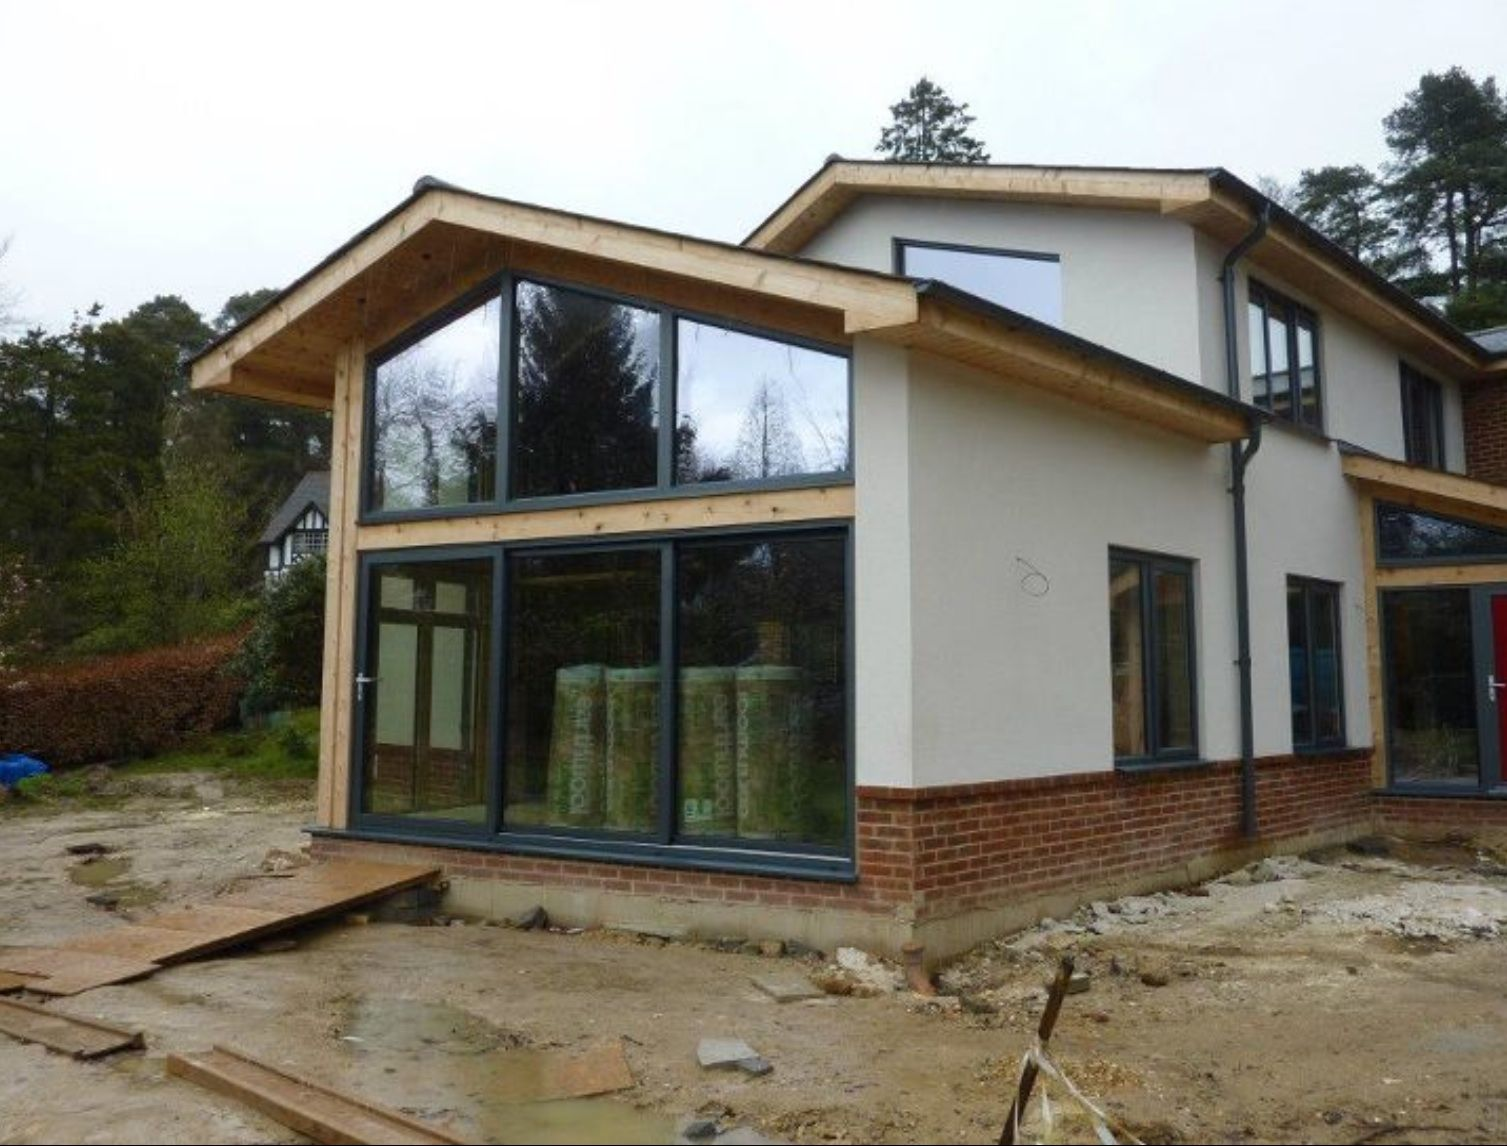 Merveilleux 4 Bedroom Self Build Timber Frame House Design   Solo Timber Frame